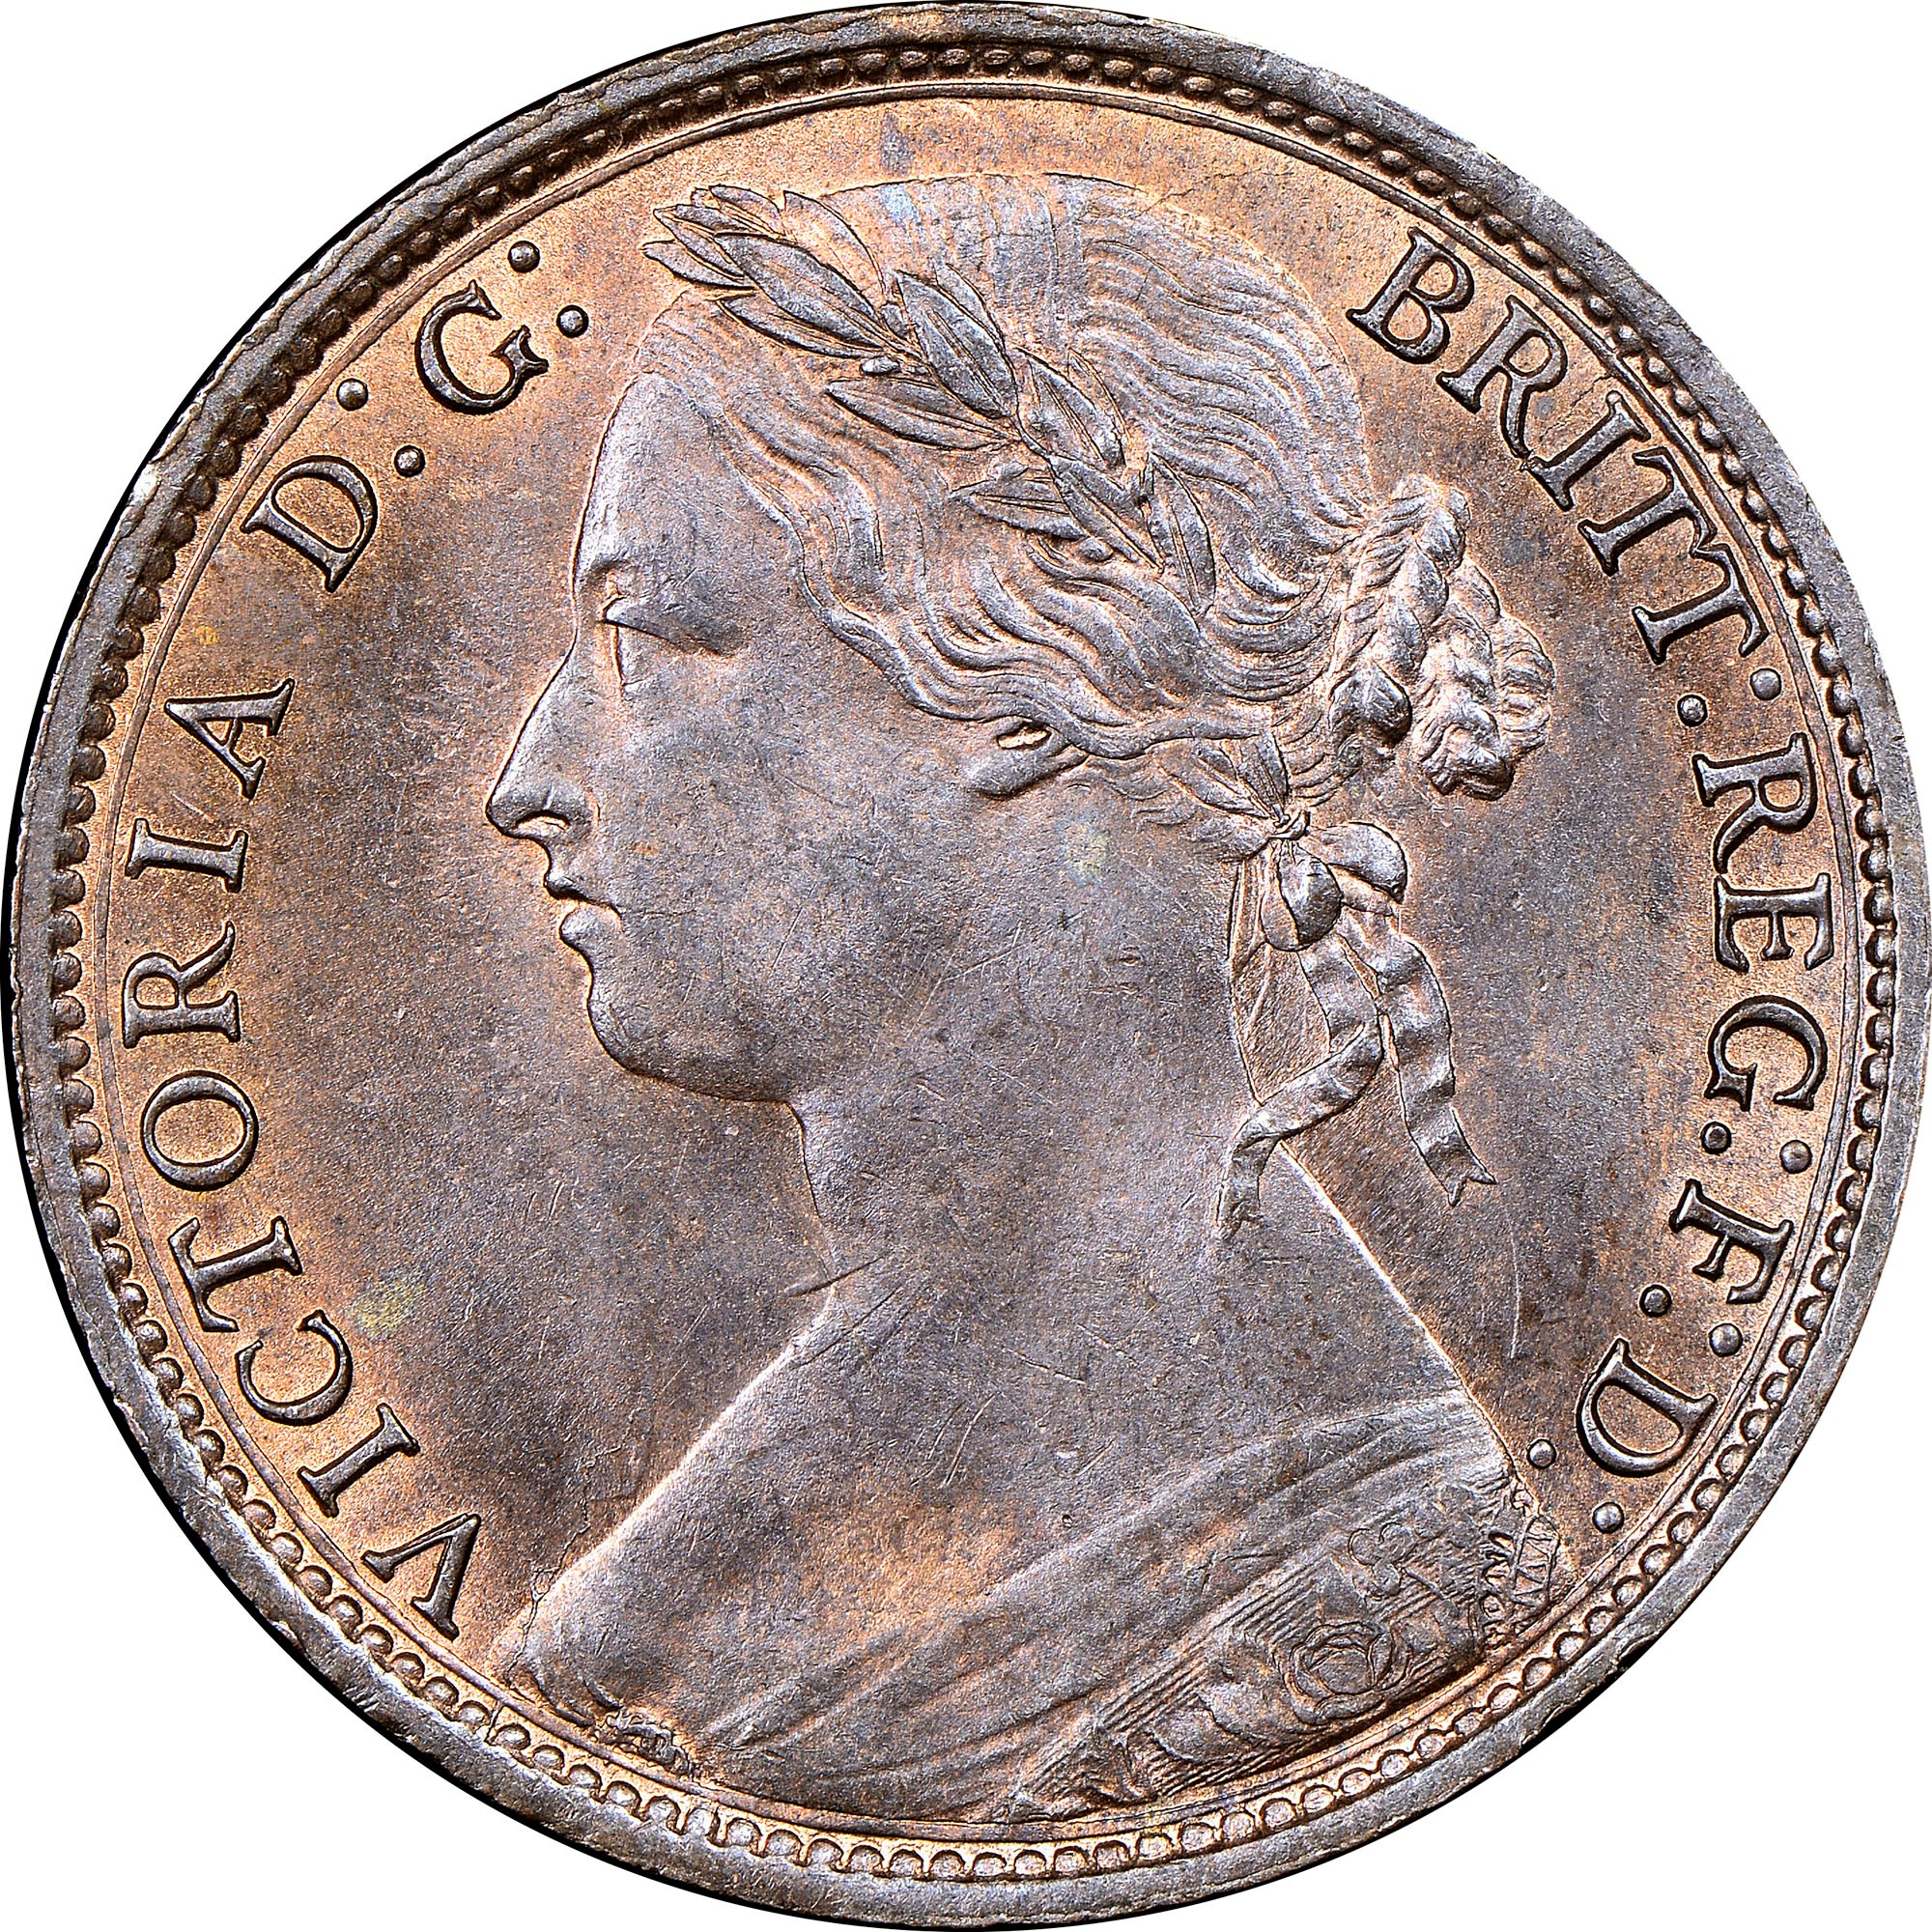 Great Britain Penny obverse